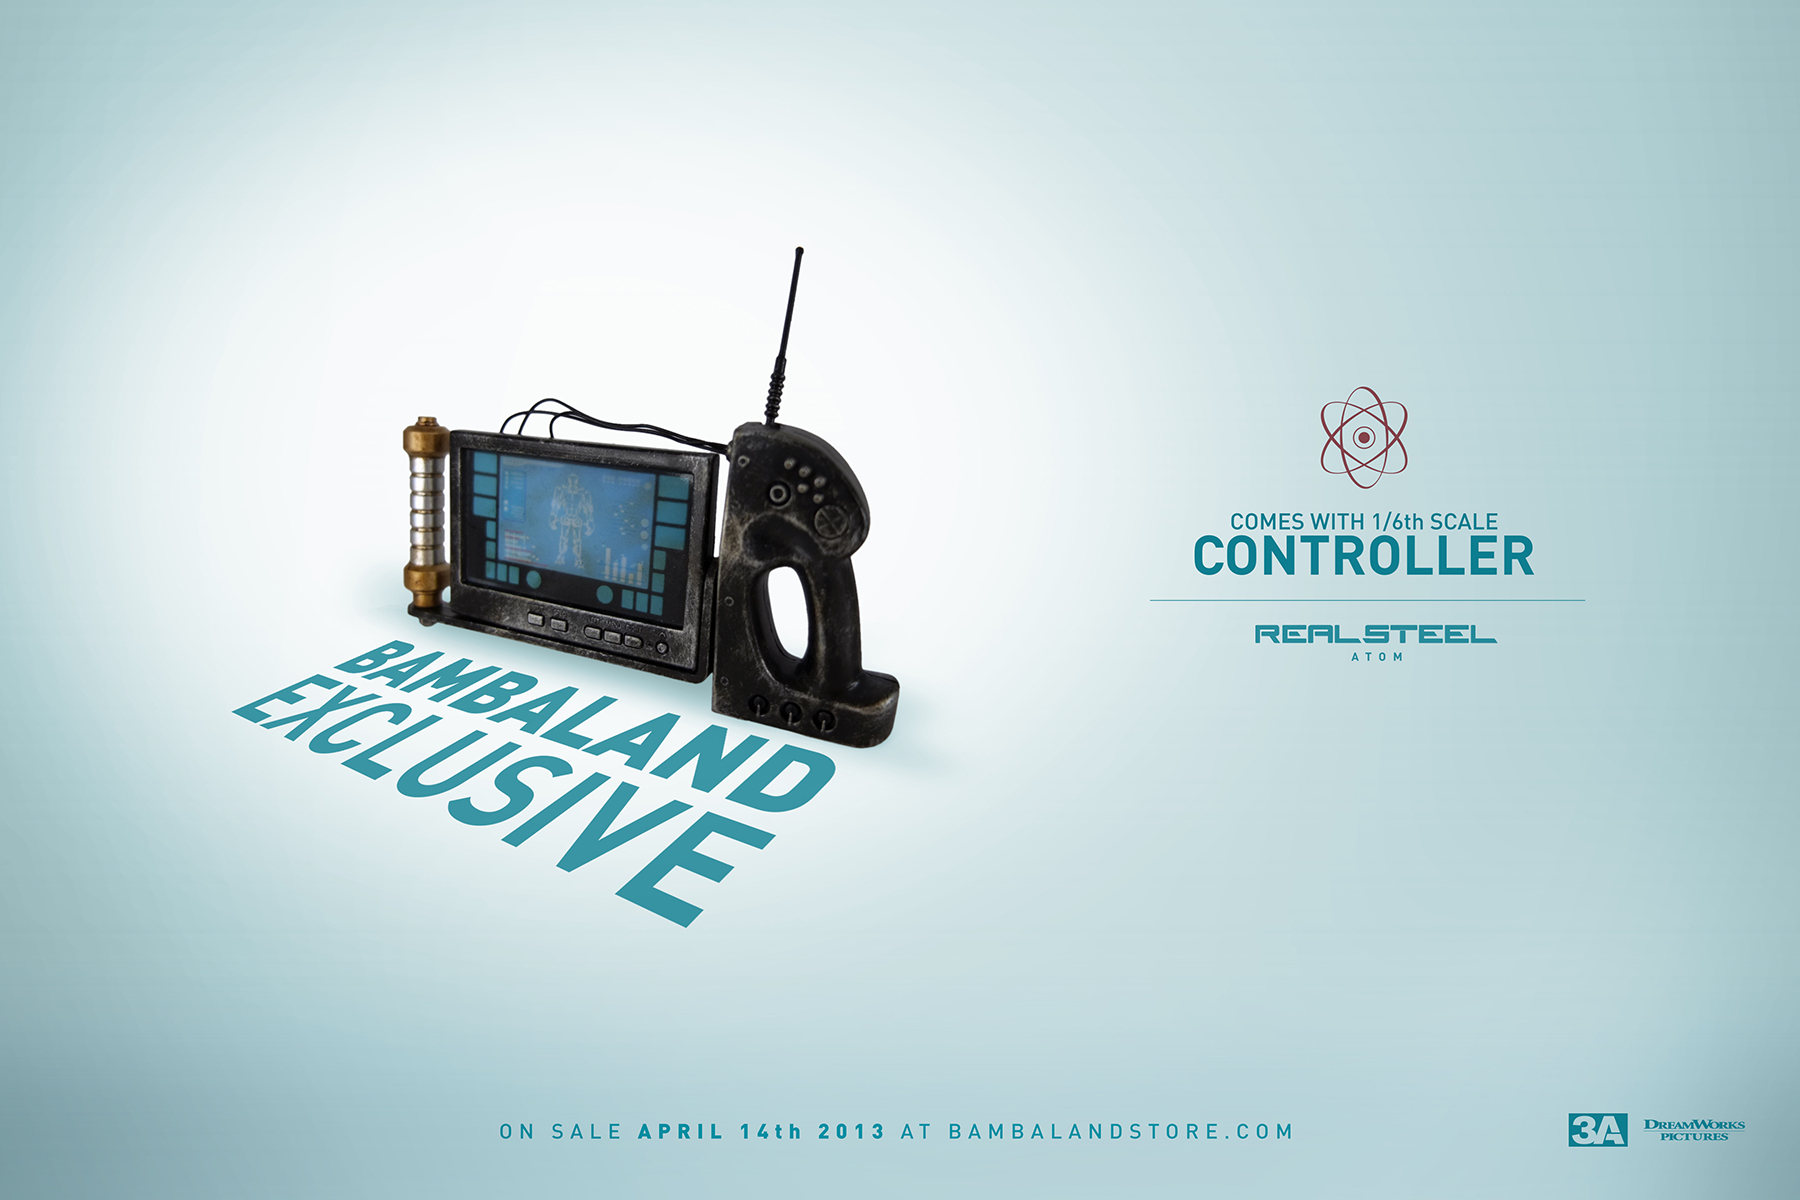 Real Steel Atom Controller